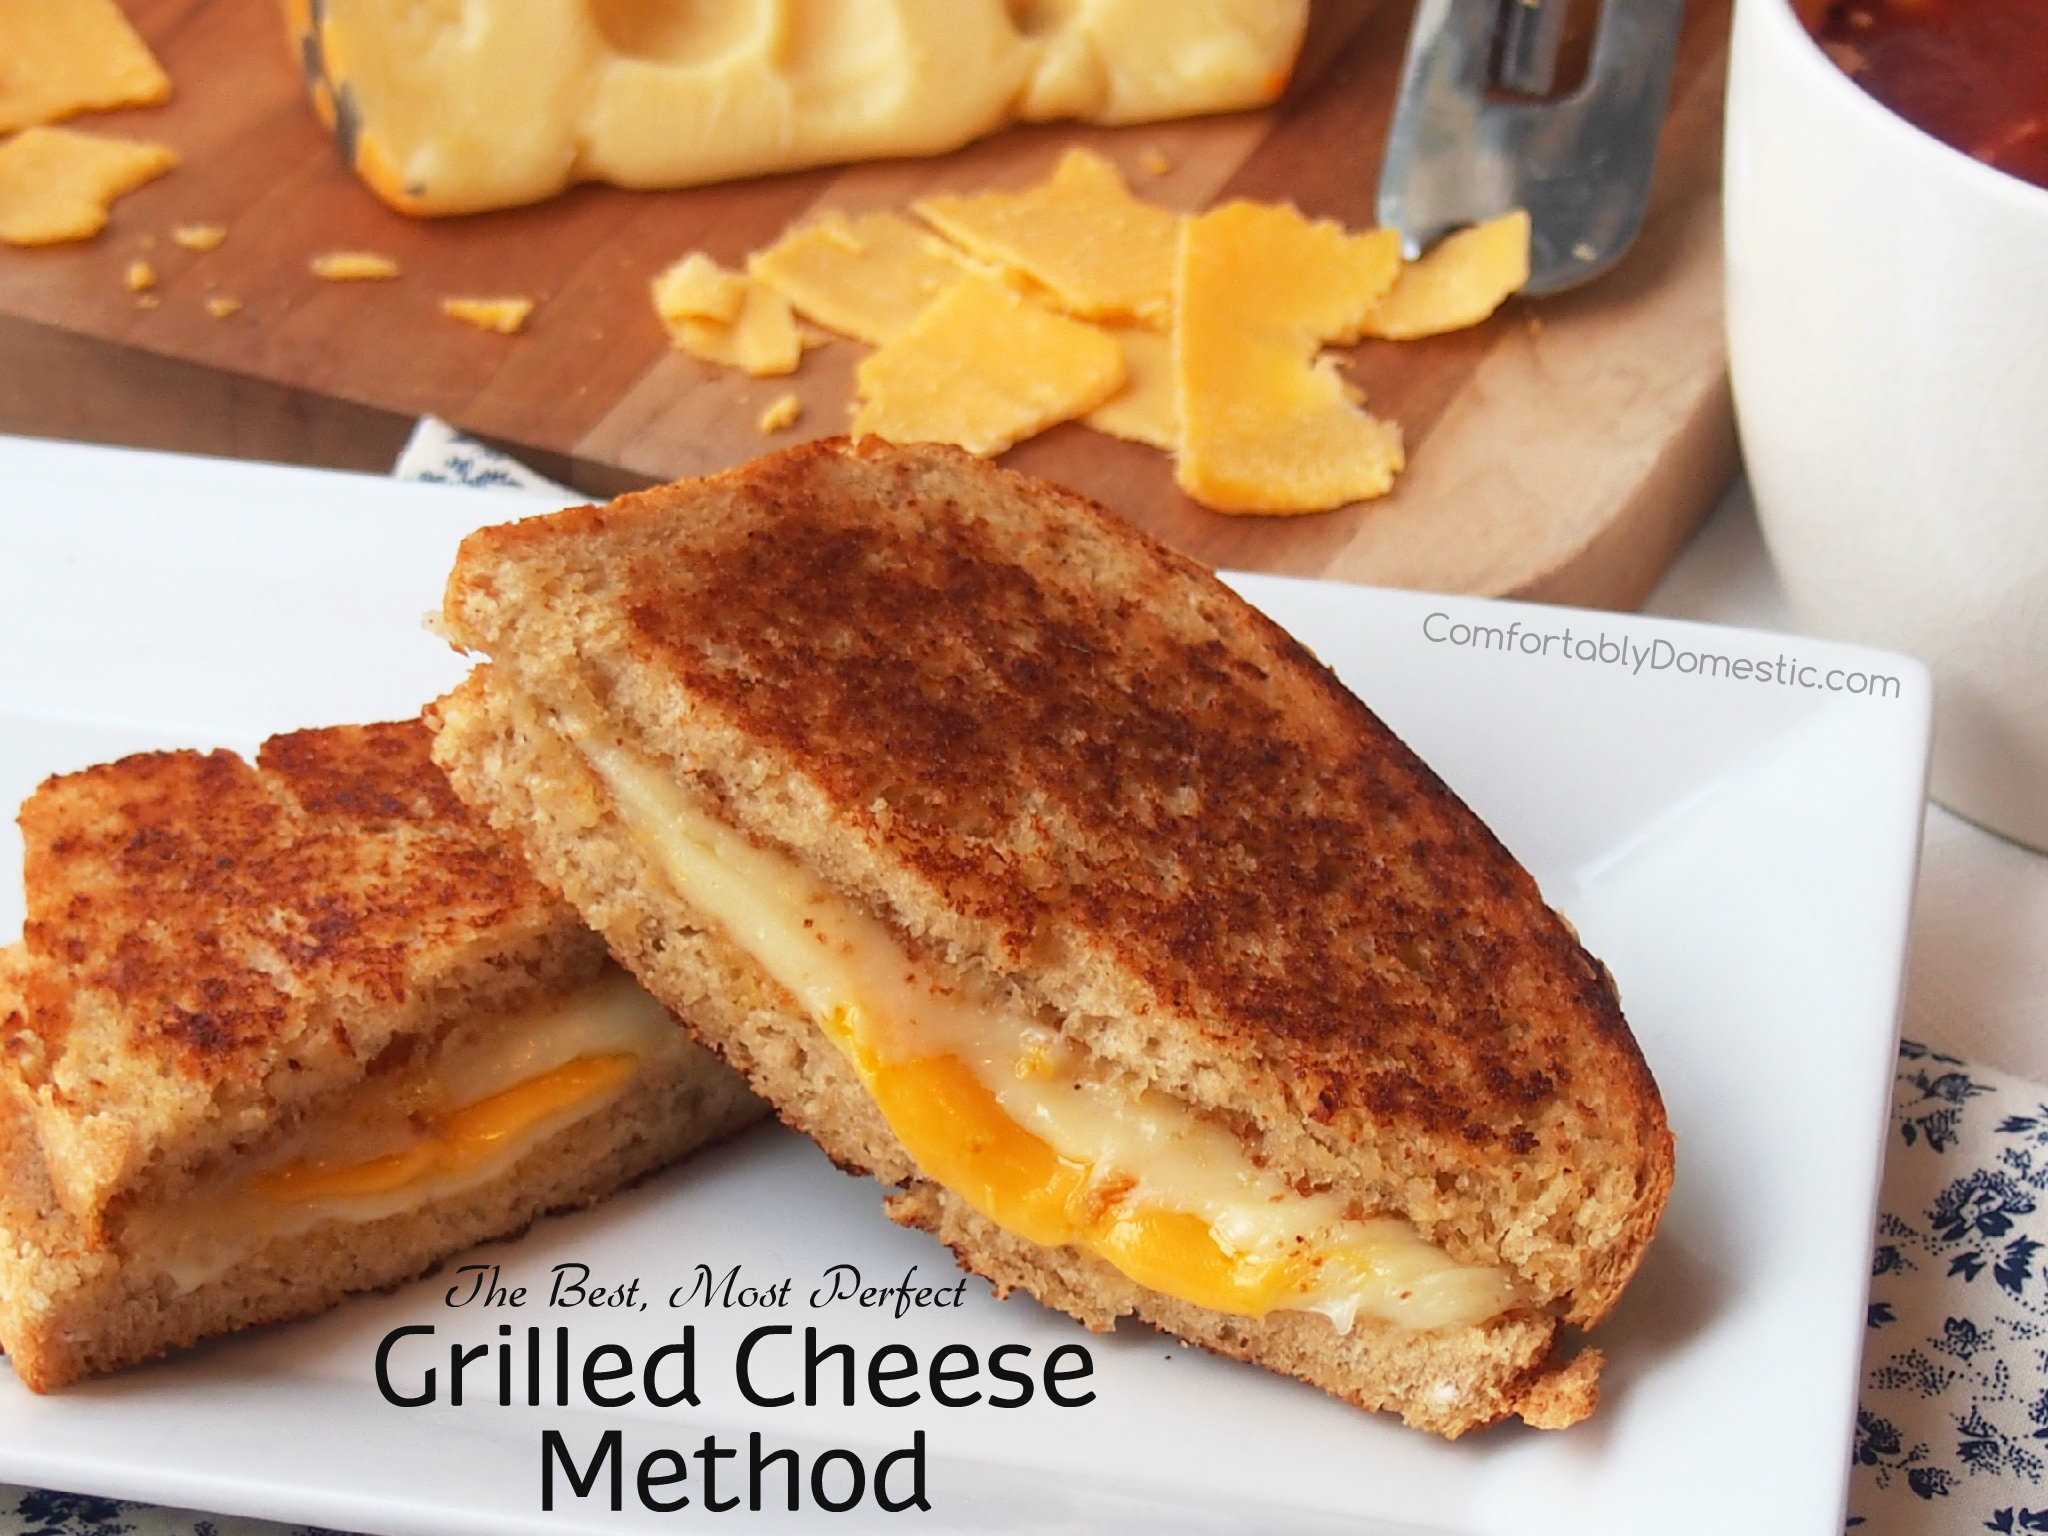 How to make the best grilled cheese | ComfortablyDomestic.com